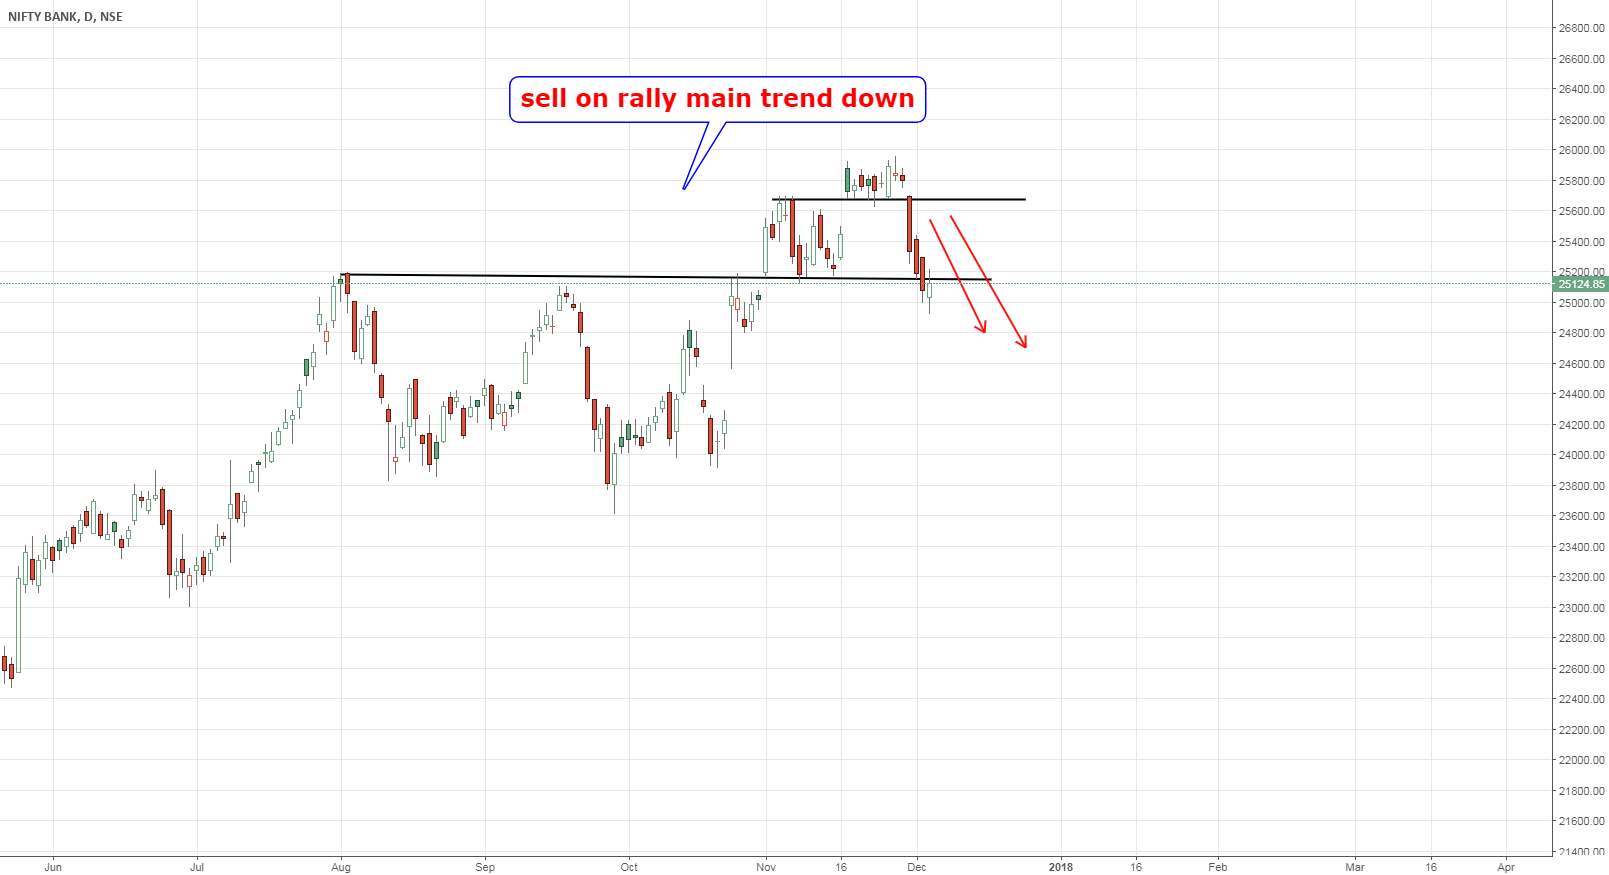 nifty bank main trend down